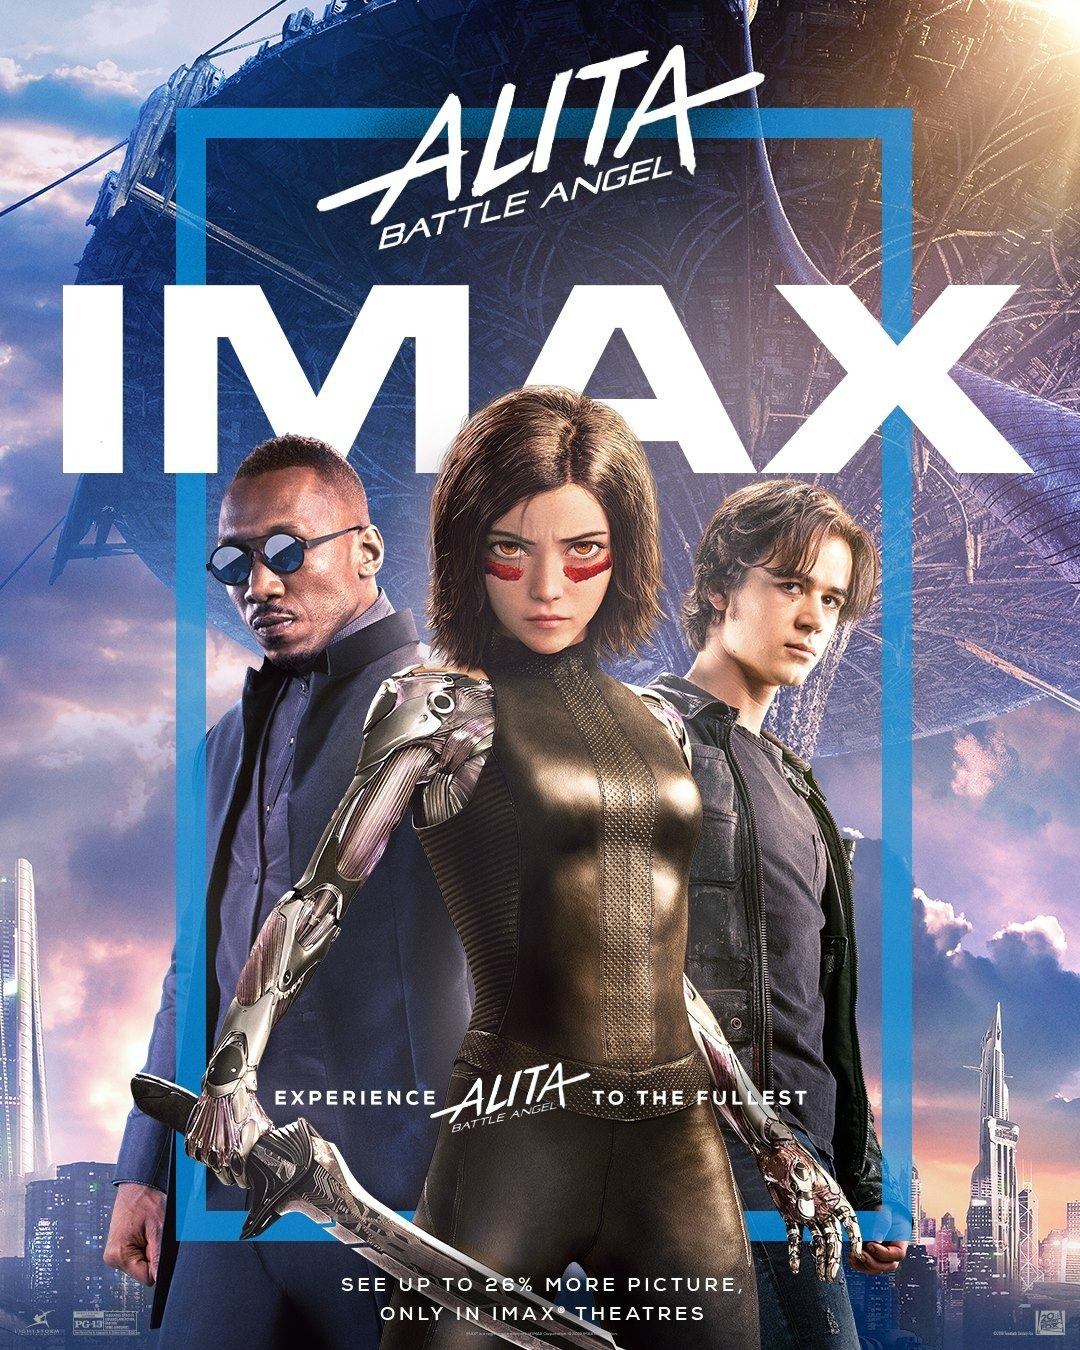 Affiche Poster alita battle angel disney 20th century fox